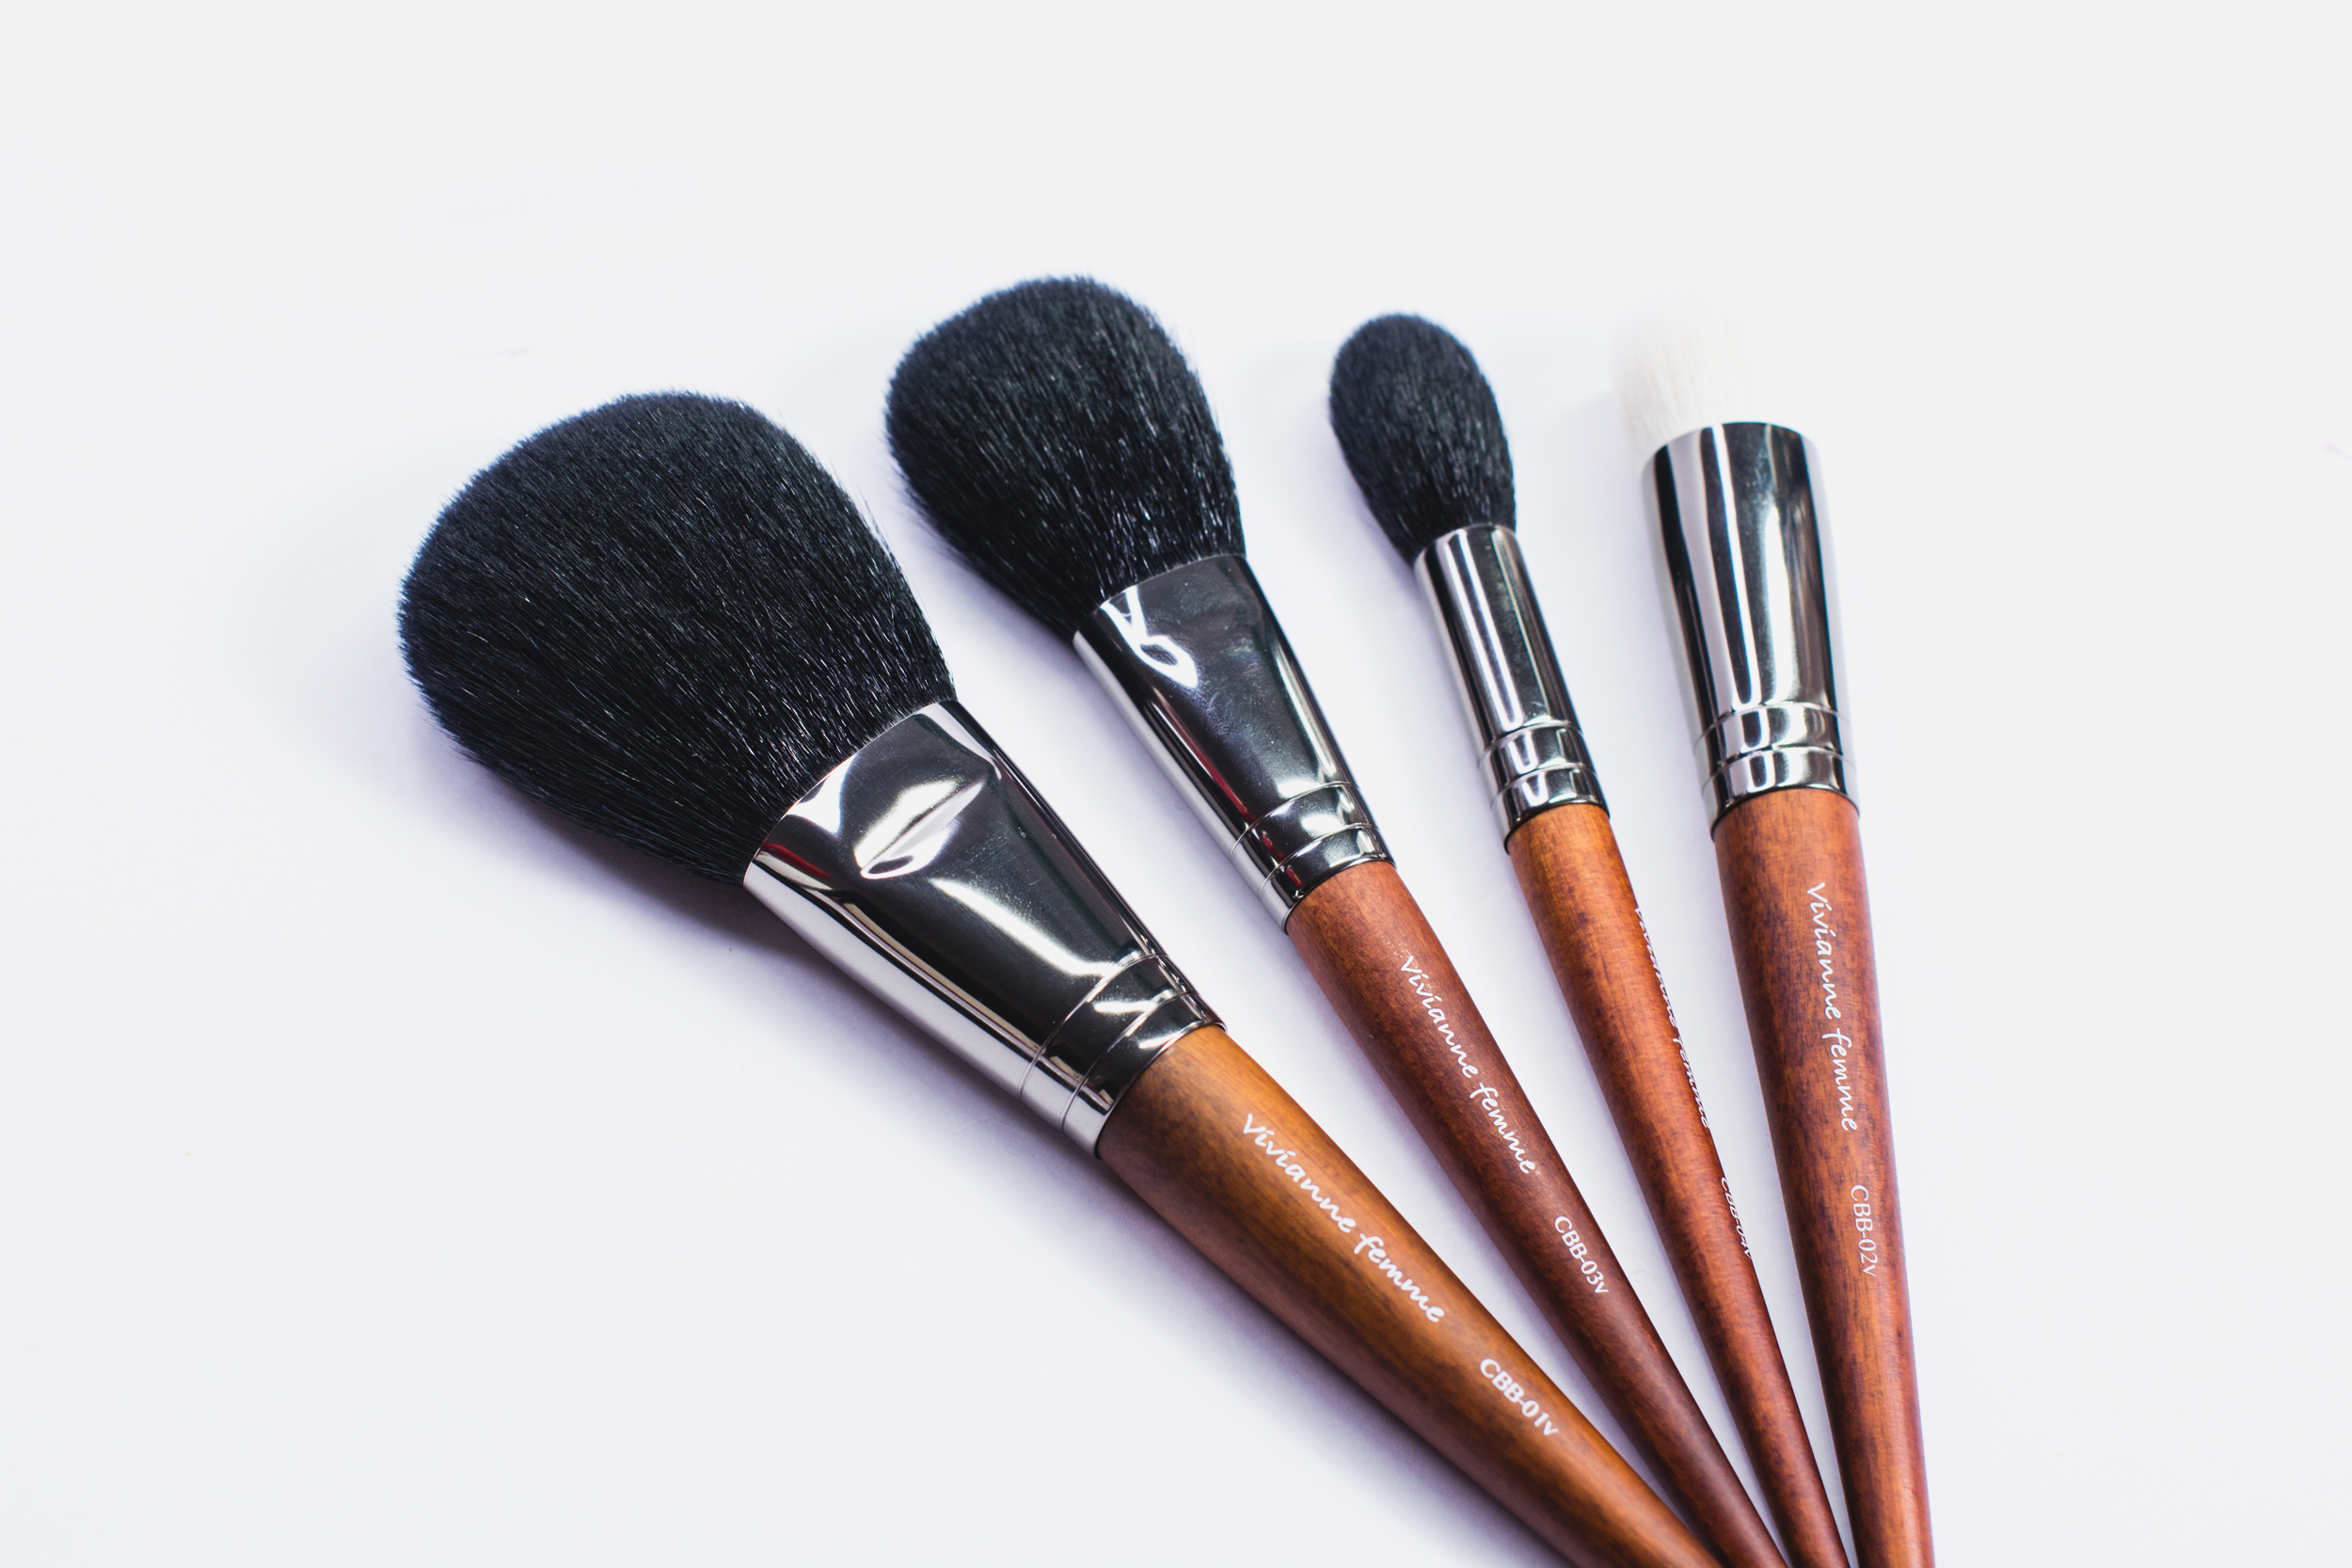 bisyodo_vivianne-femme_face-eye_brush-set_project-vanity-online-shop_2019-84.JPG